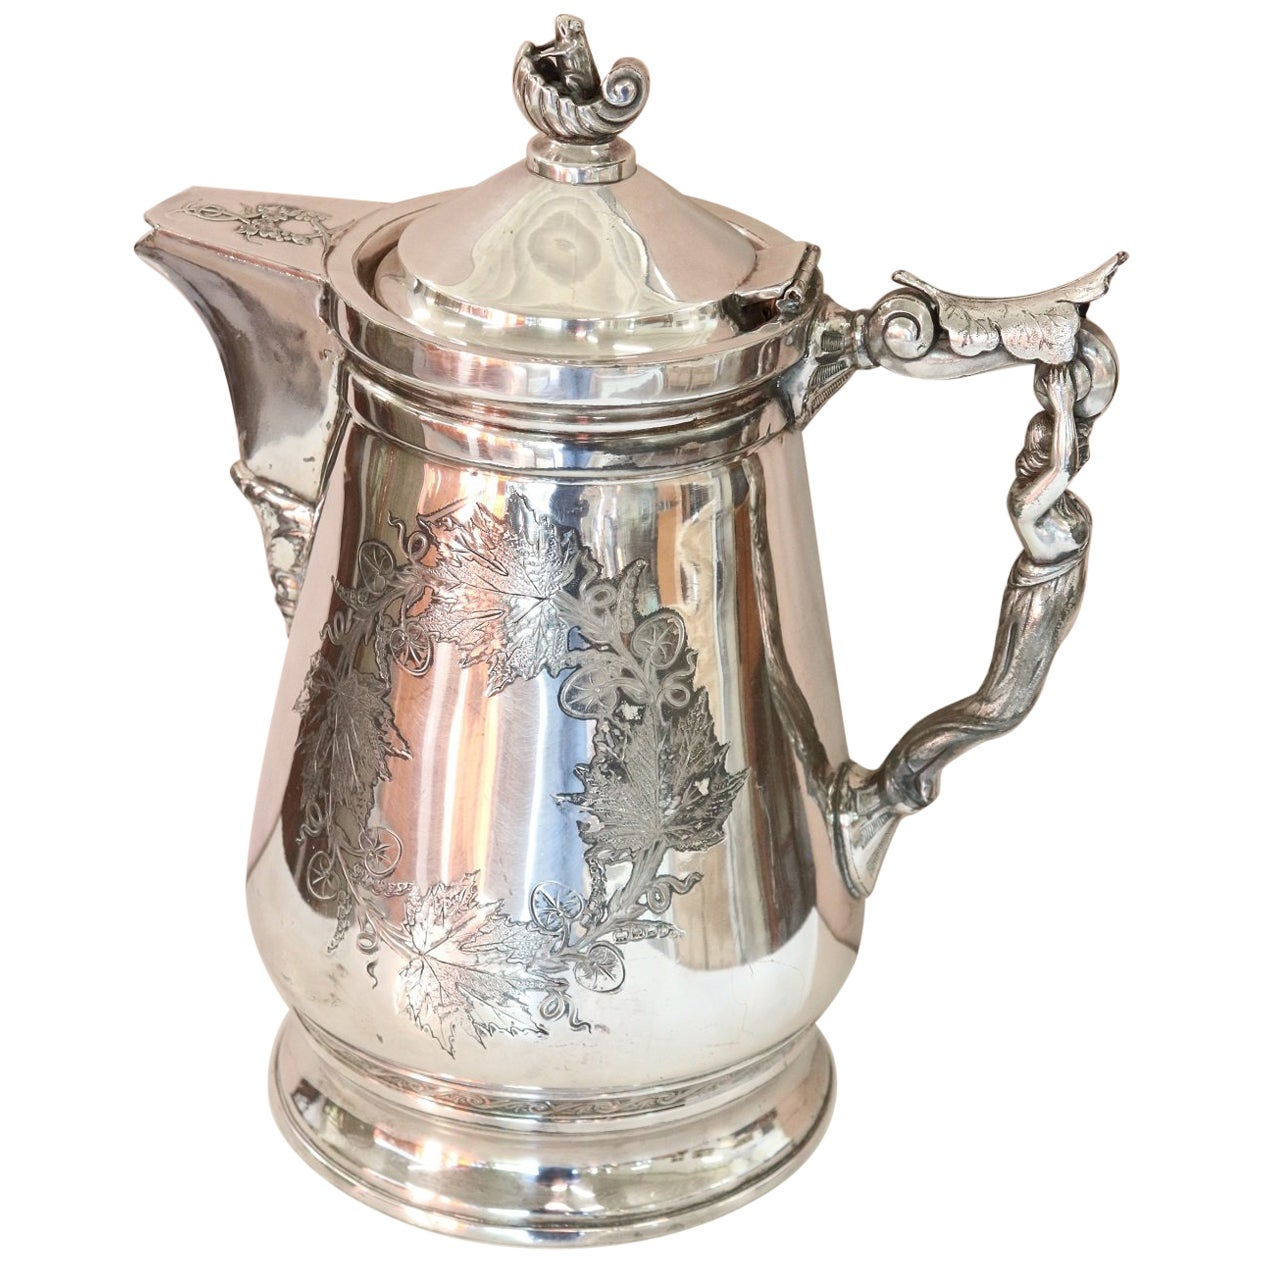 19th Century American Antique Silver Plate Pitcher or Coffee Pot by Wilcox